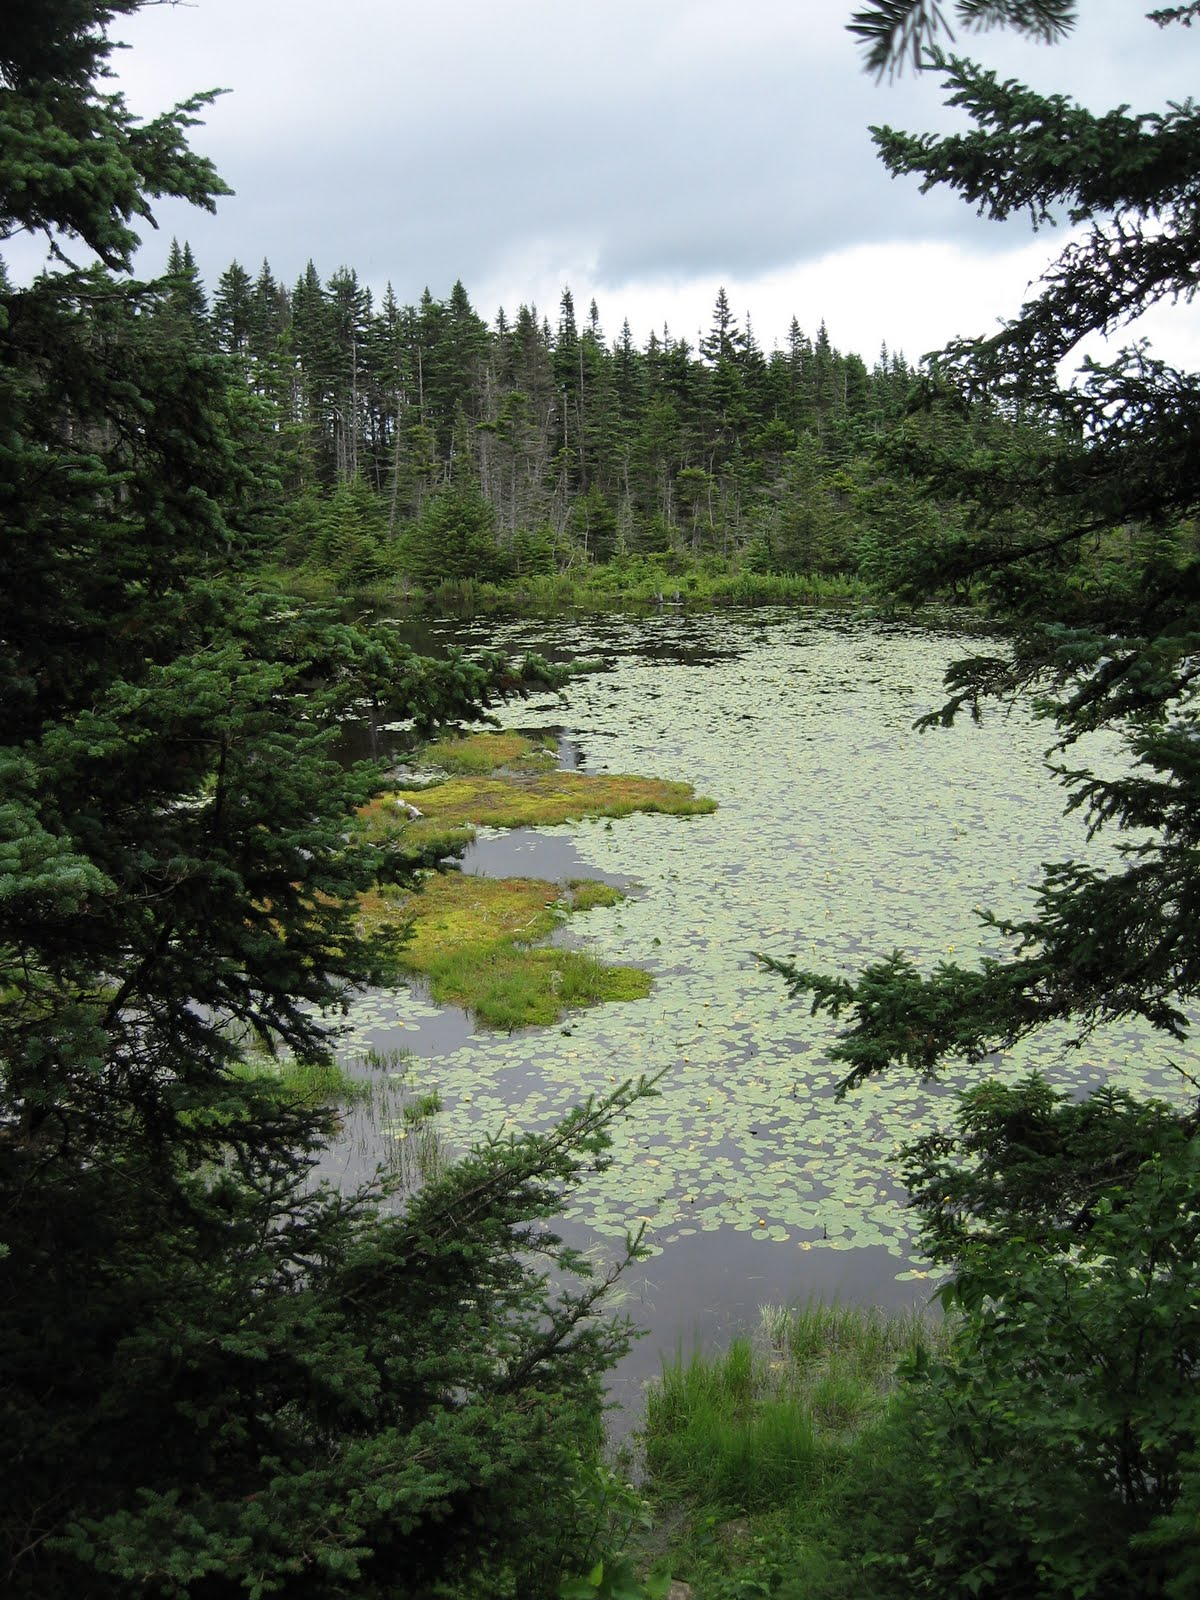 last week week 6 we worked on a project with the us forest service mapping wetlands within the green mountain national forest it was full of bushwacking